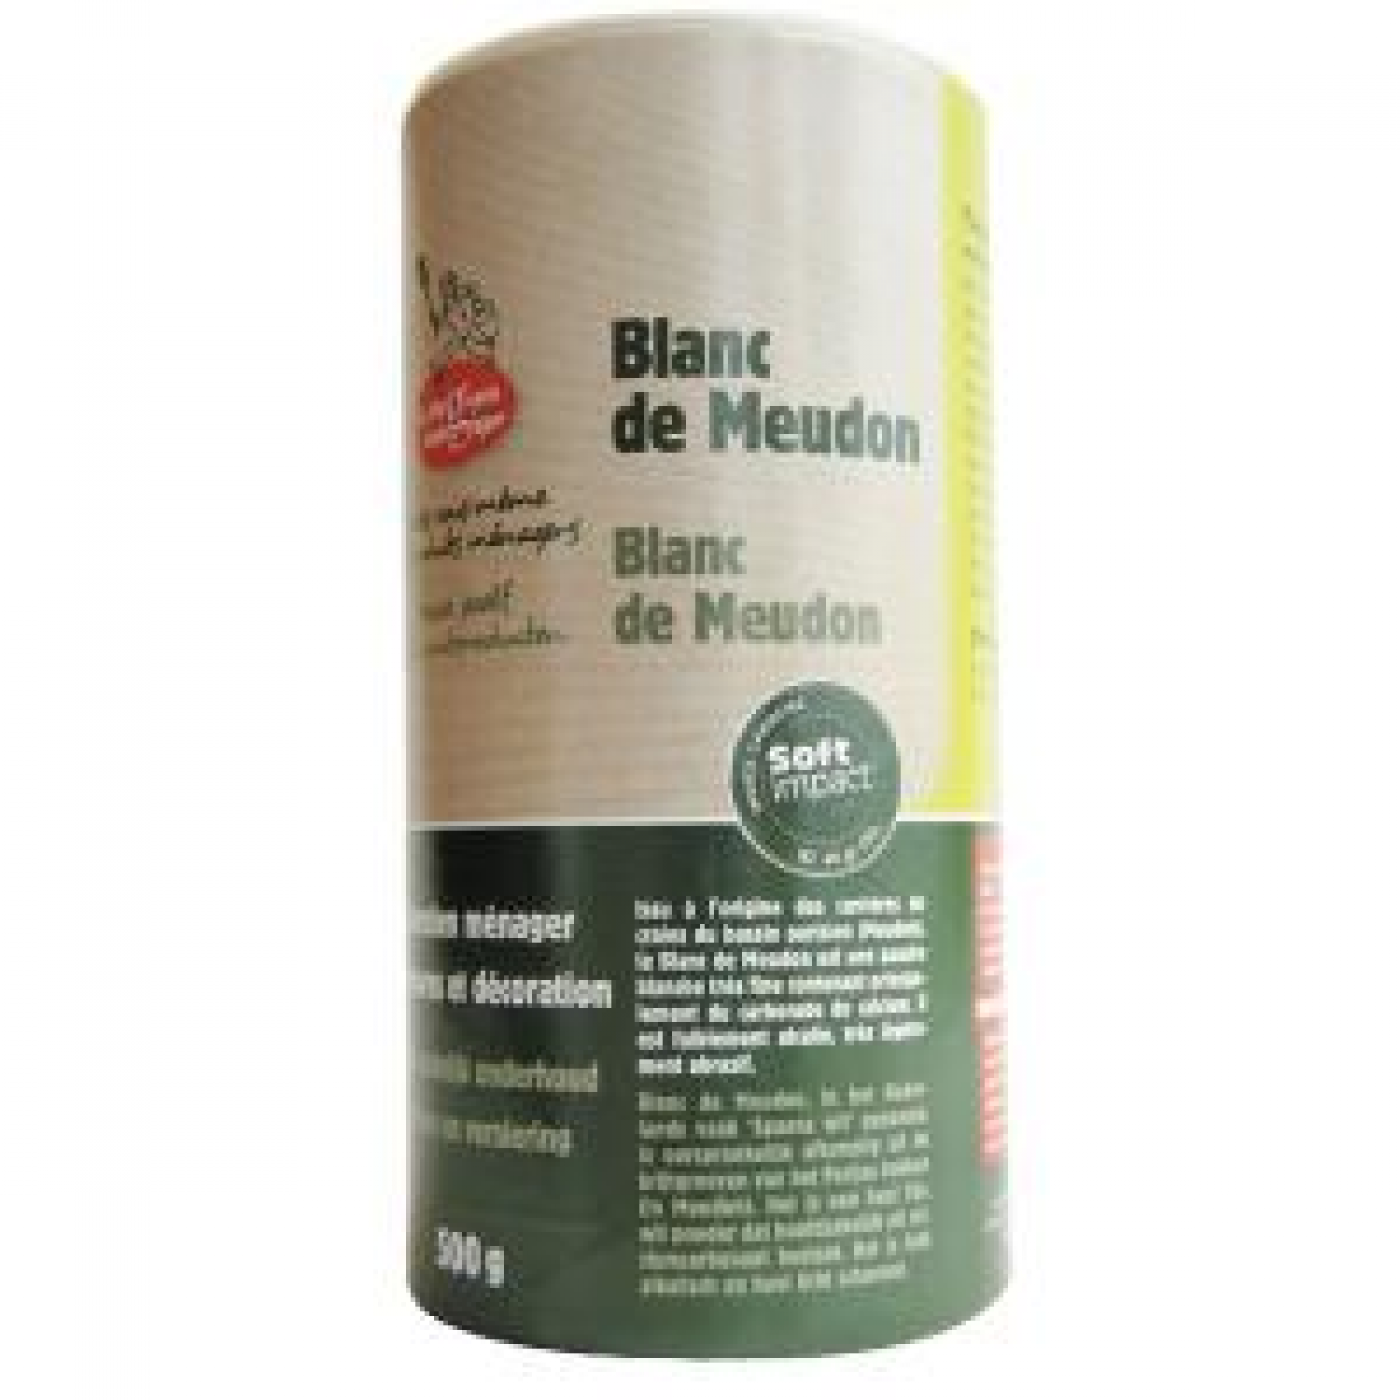 blanc de meudon la droguerie cologique 500 g por 3 28 en planeta huerto. Black Bedroom Furniture Sets. Home Design Ideas